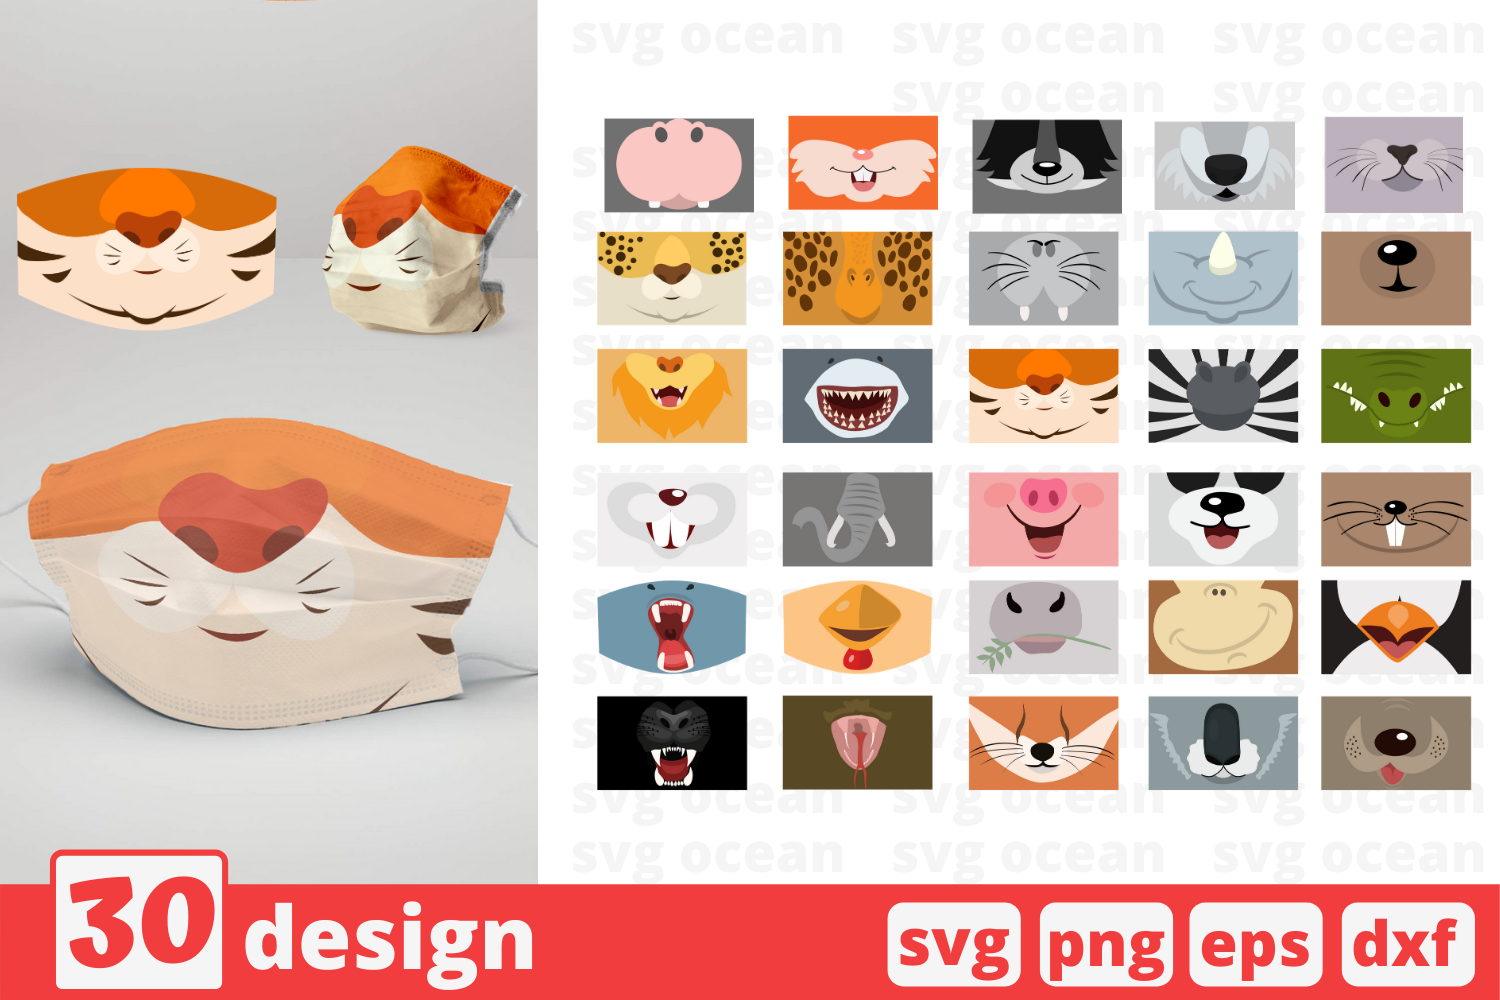 Download Free 30 Animal Mouths Bundle Graphic By Svgocean Creative Fabrica for Cricut Explore, Silhouette and other cutting machines.